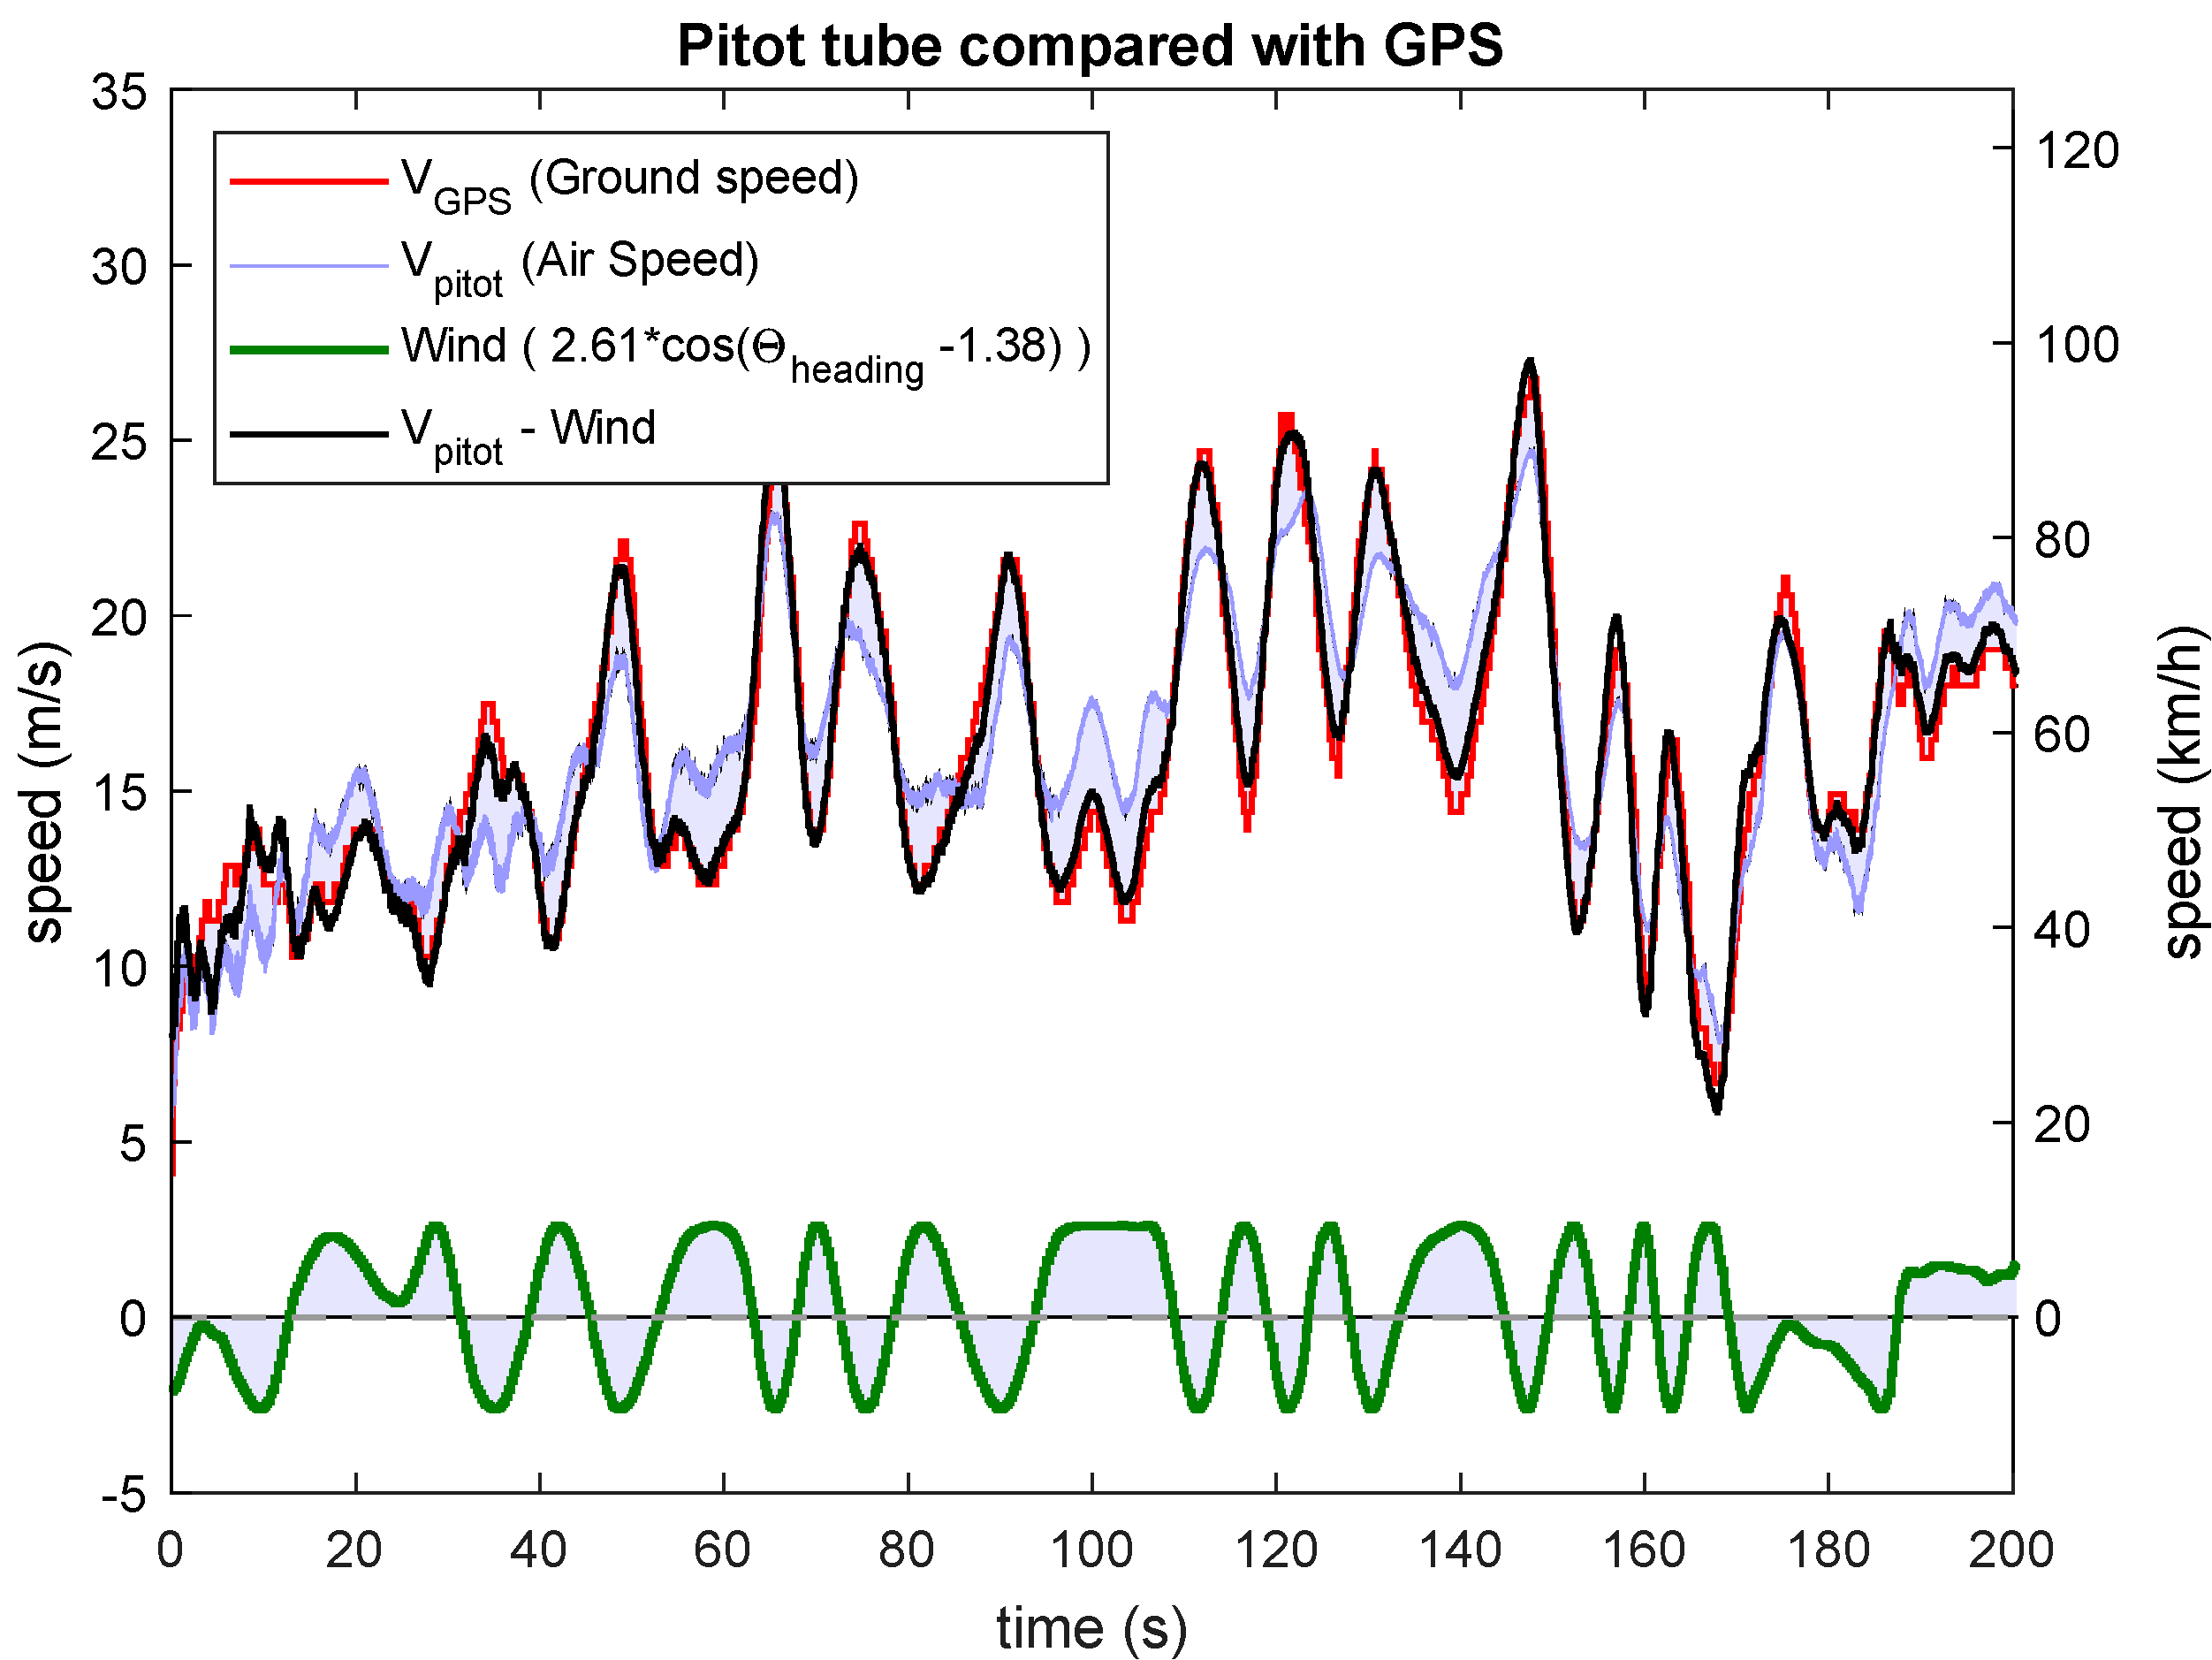 Data log of the first 200s of the Firstar 1600 RC plane flight. On the black curve, the Pitot is averaged and under-sampled by group of 5 samples reducing its sampling rate from 250Hz to 50Hz. GPS (red) and Pitot minus Wind (black) matches.